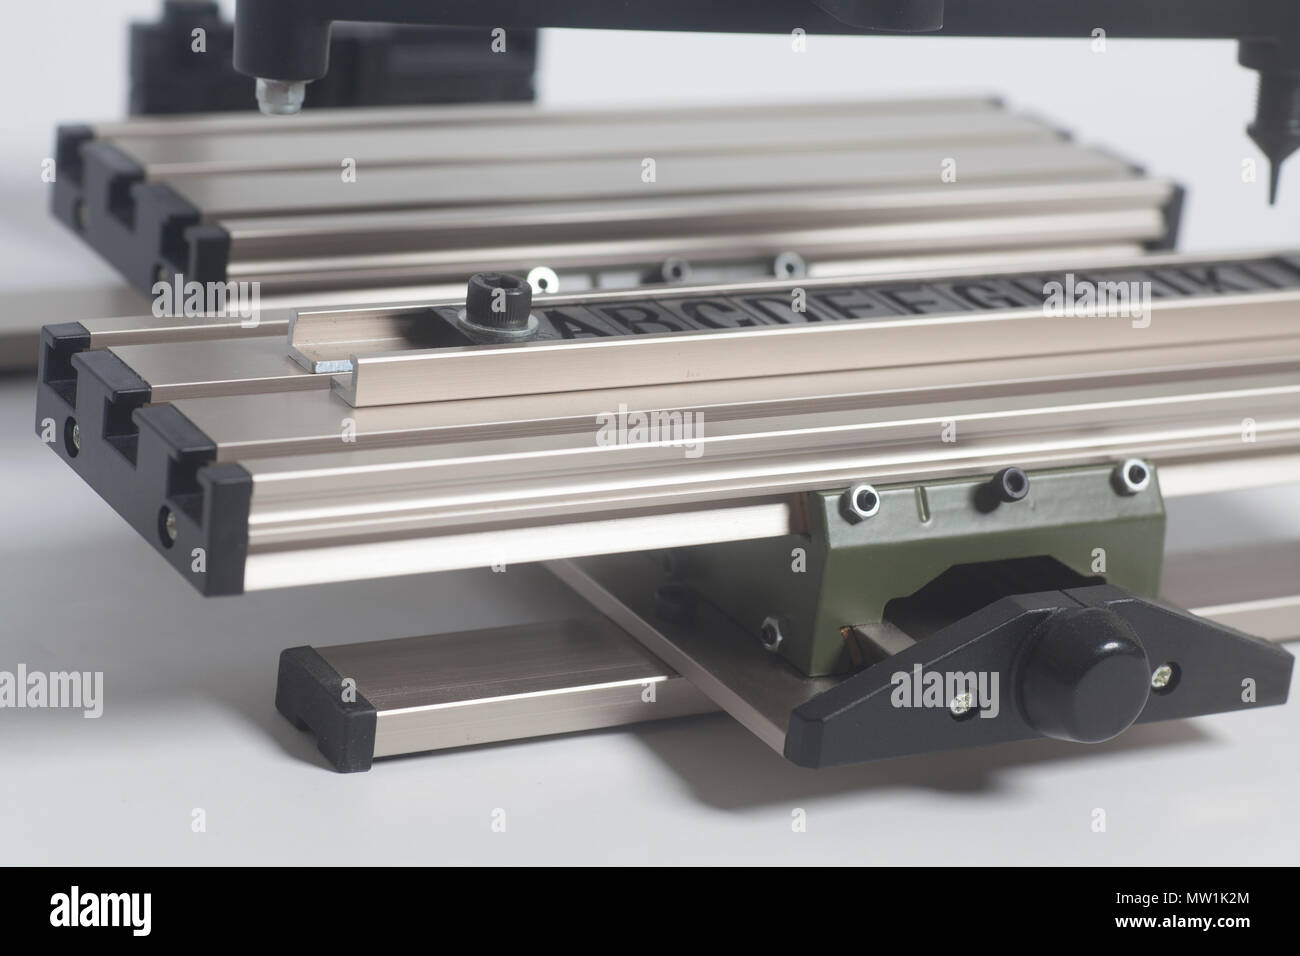 Engraving device pantograph with letterpress alphabet on a white background - Stock Image